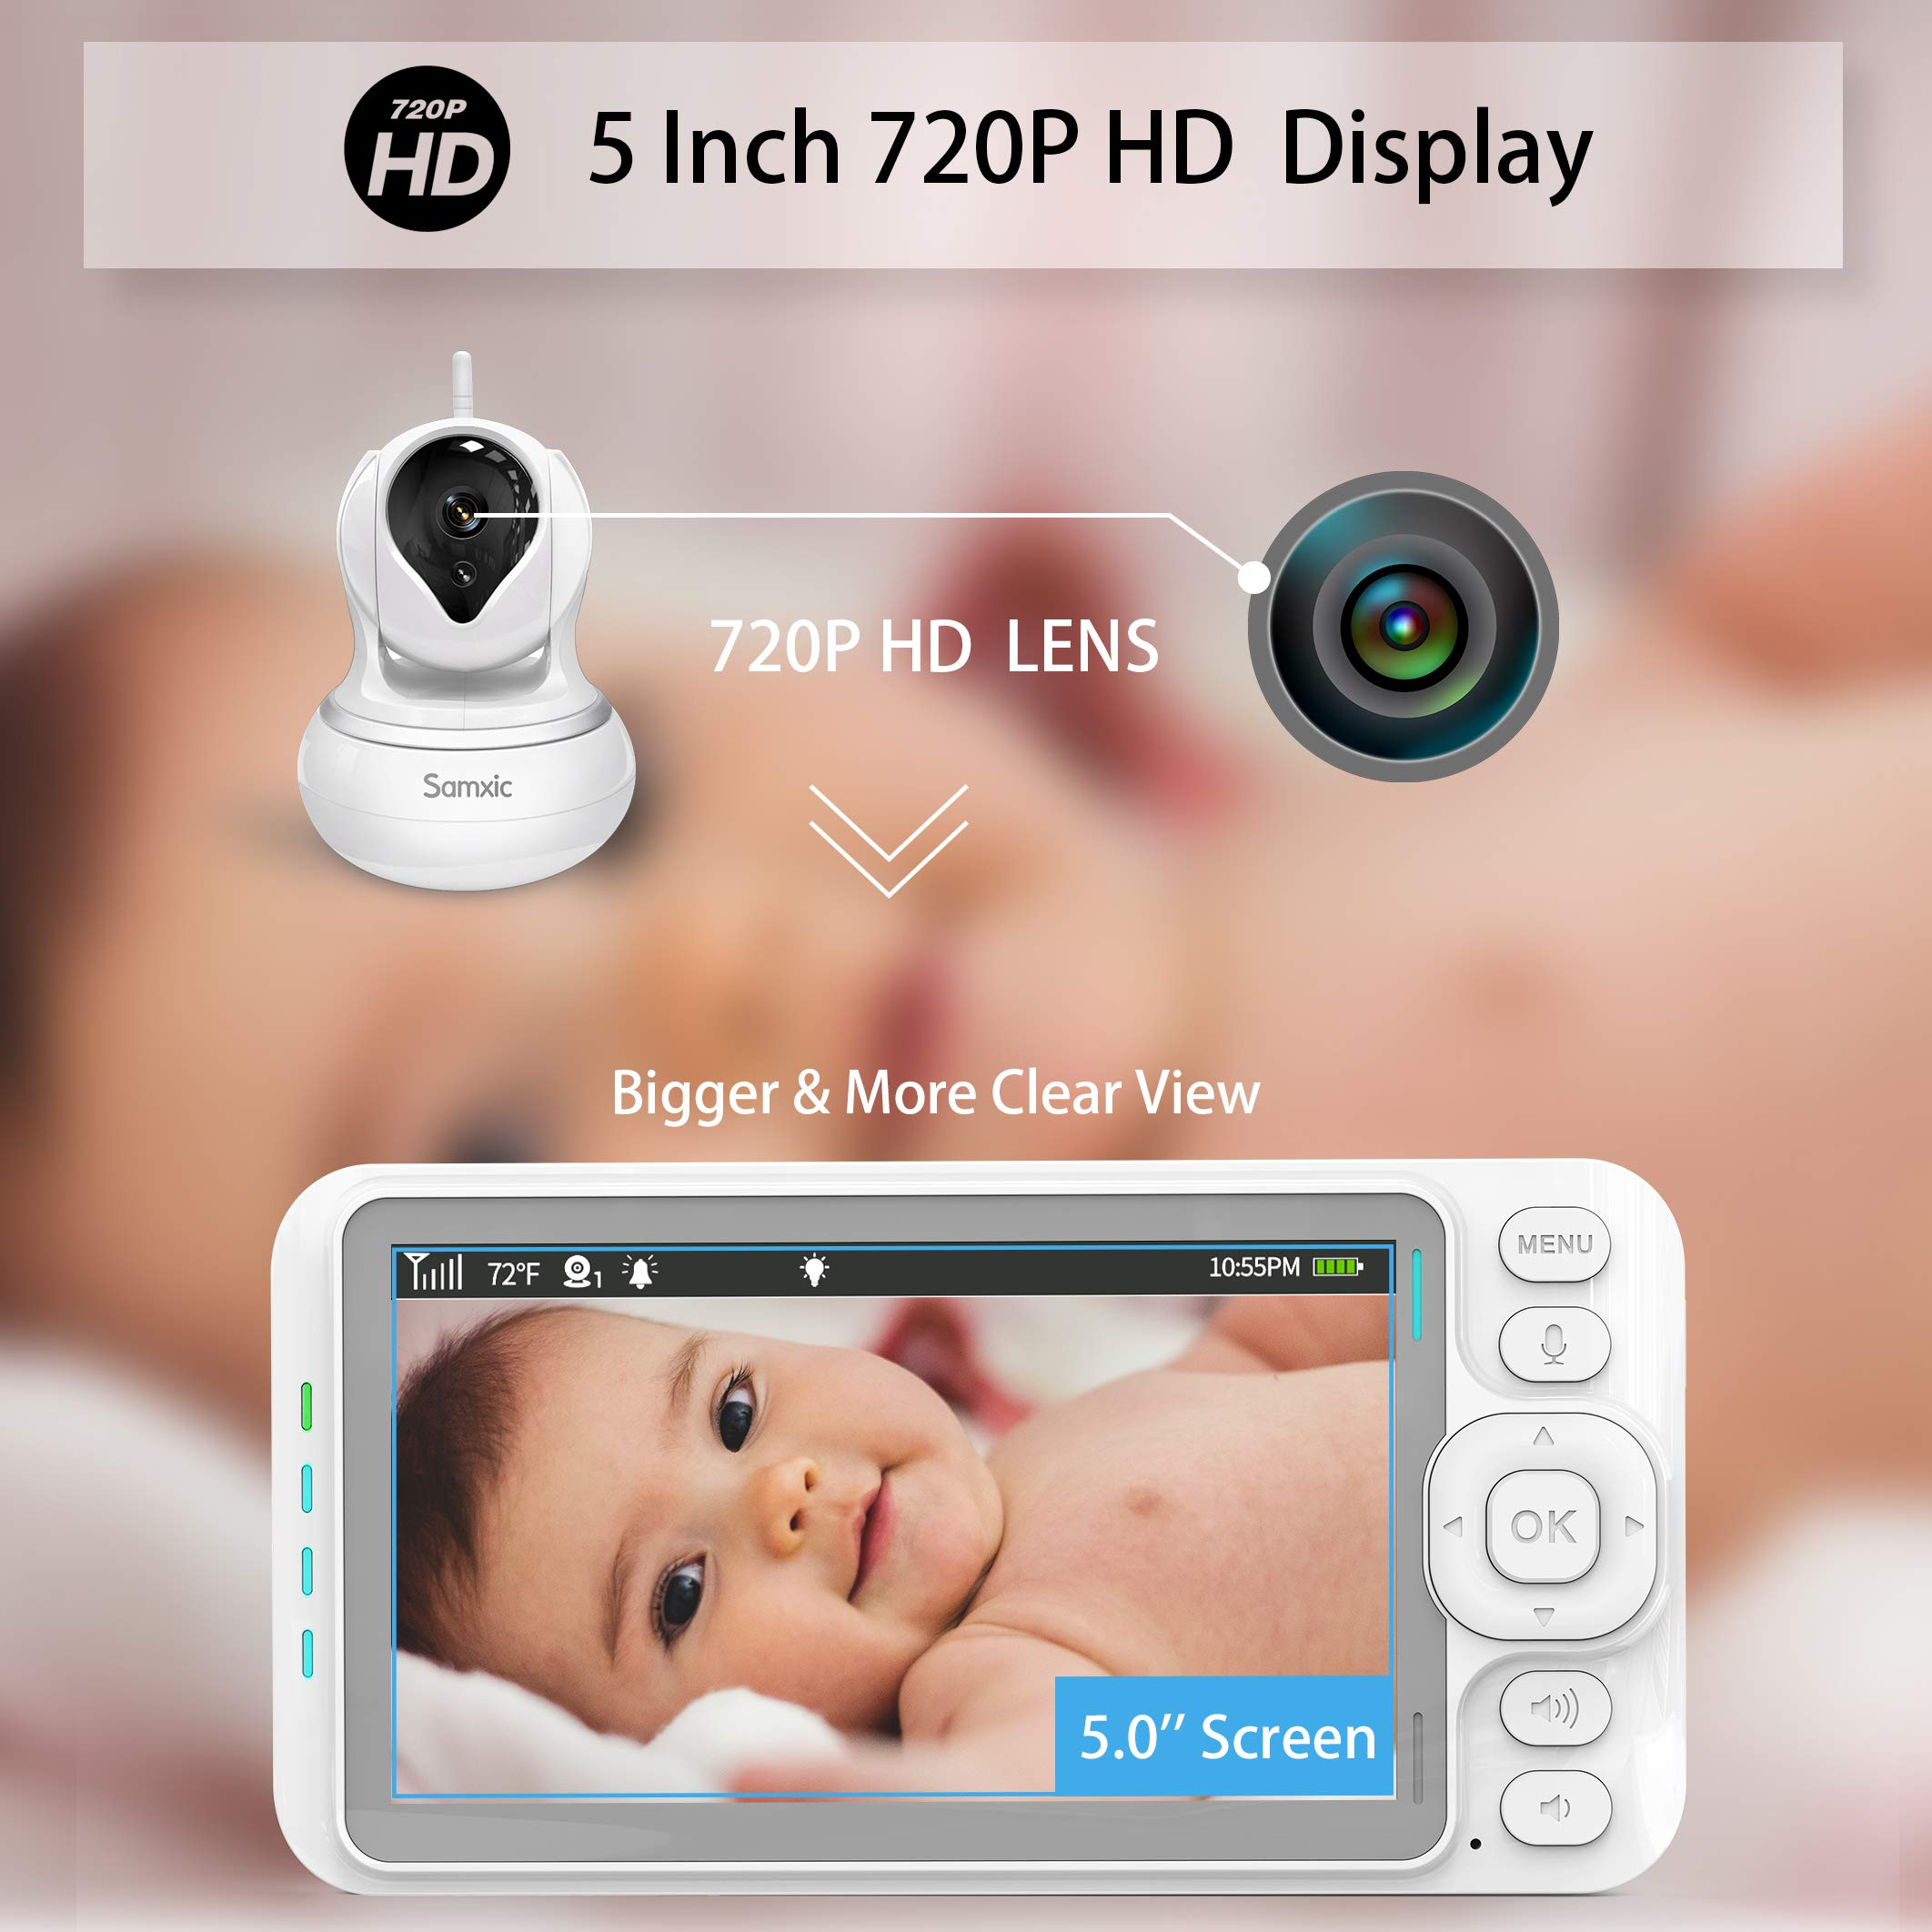 Samxic Video Baby Monitor with 720P Camera, 5 Inches Display, Crying & Temperature Alert, Two-Way Talk, No Glow Night Vision, Remote Pan & Tilt & Zoom, High Privacy Baby Monitor System by Samxic (Image #2)